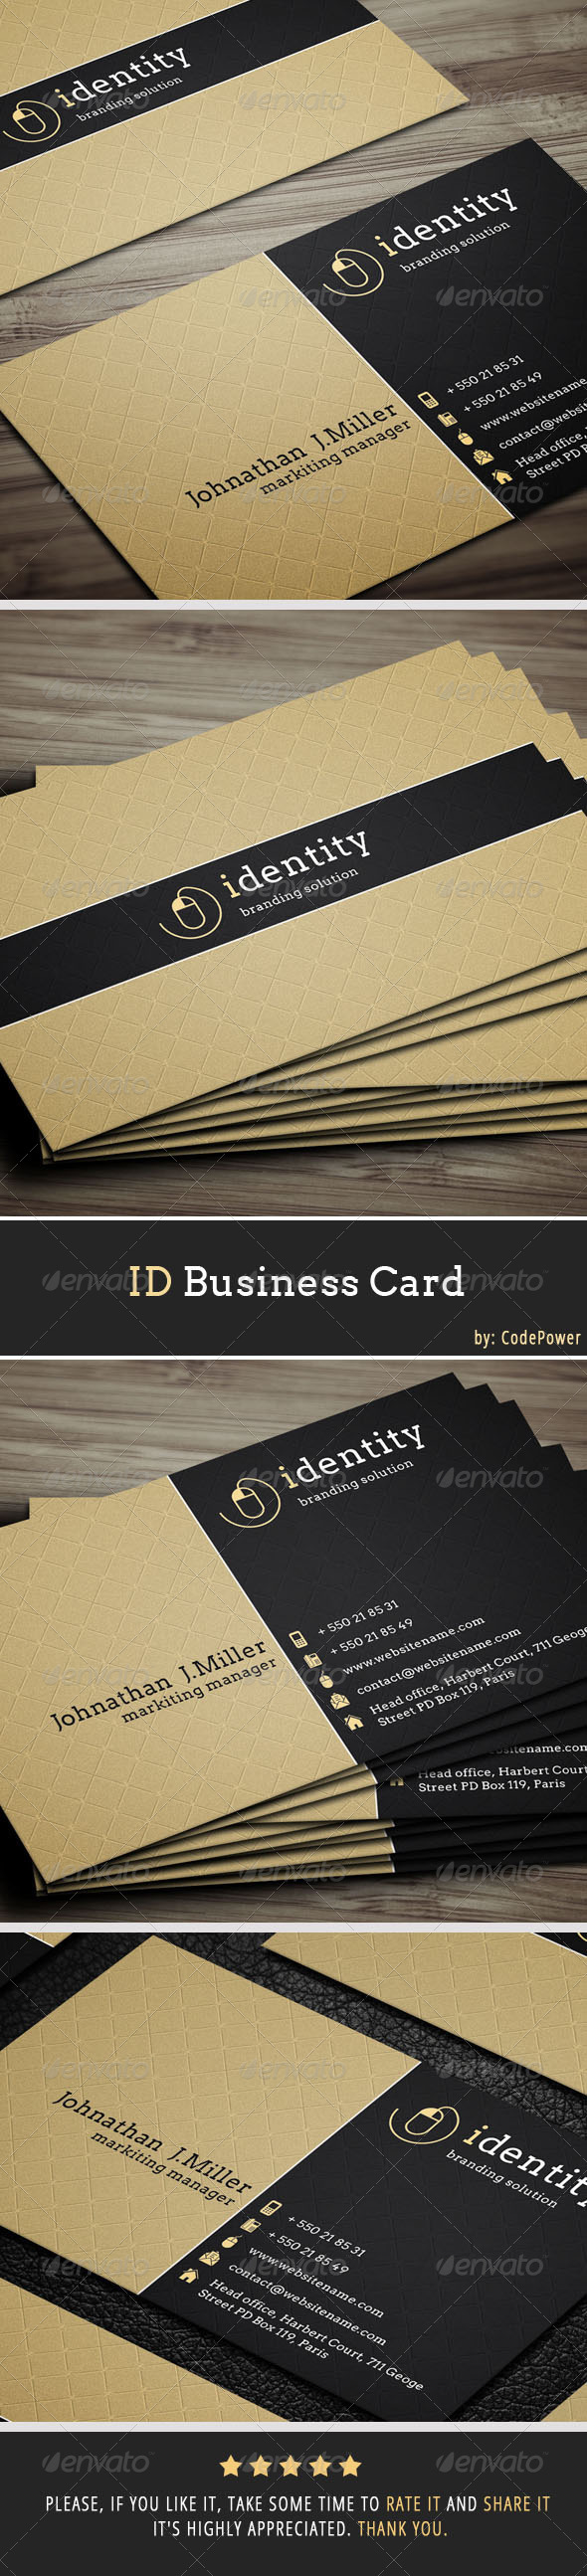 GraphicRiver ID Business Card 7080320